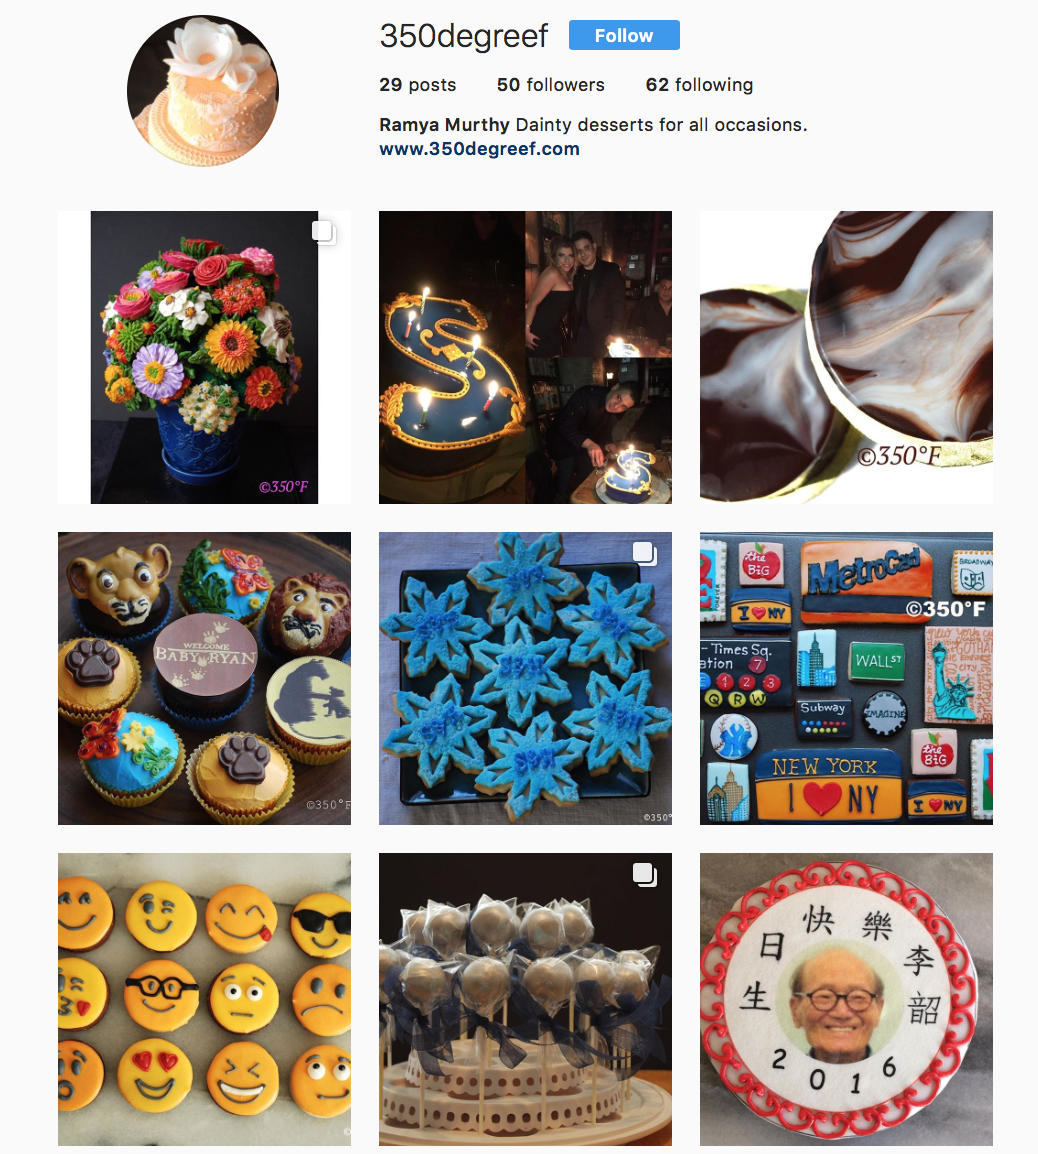 Follow us on instagram at 350degreef